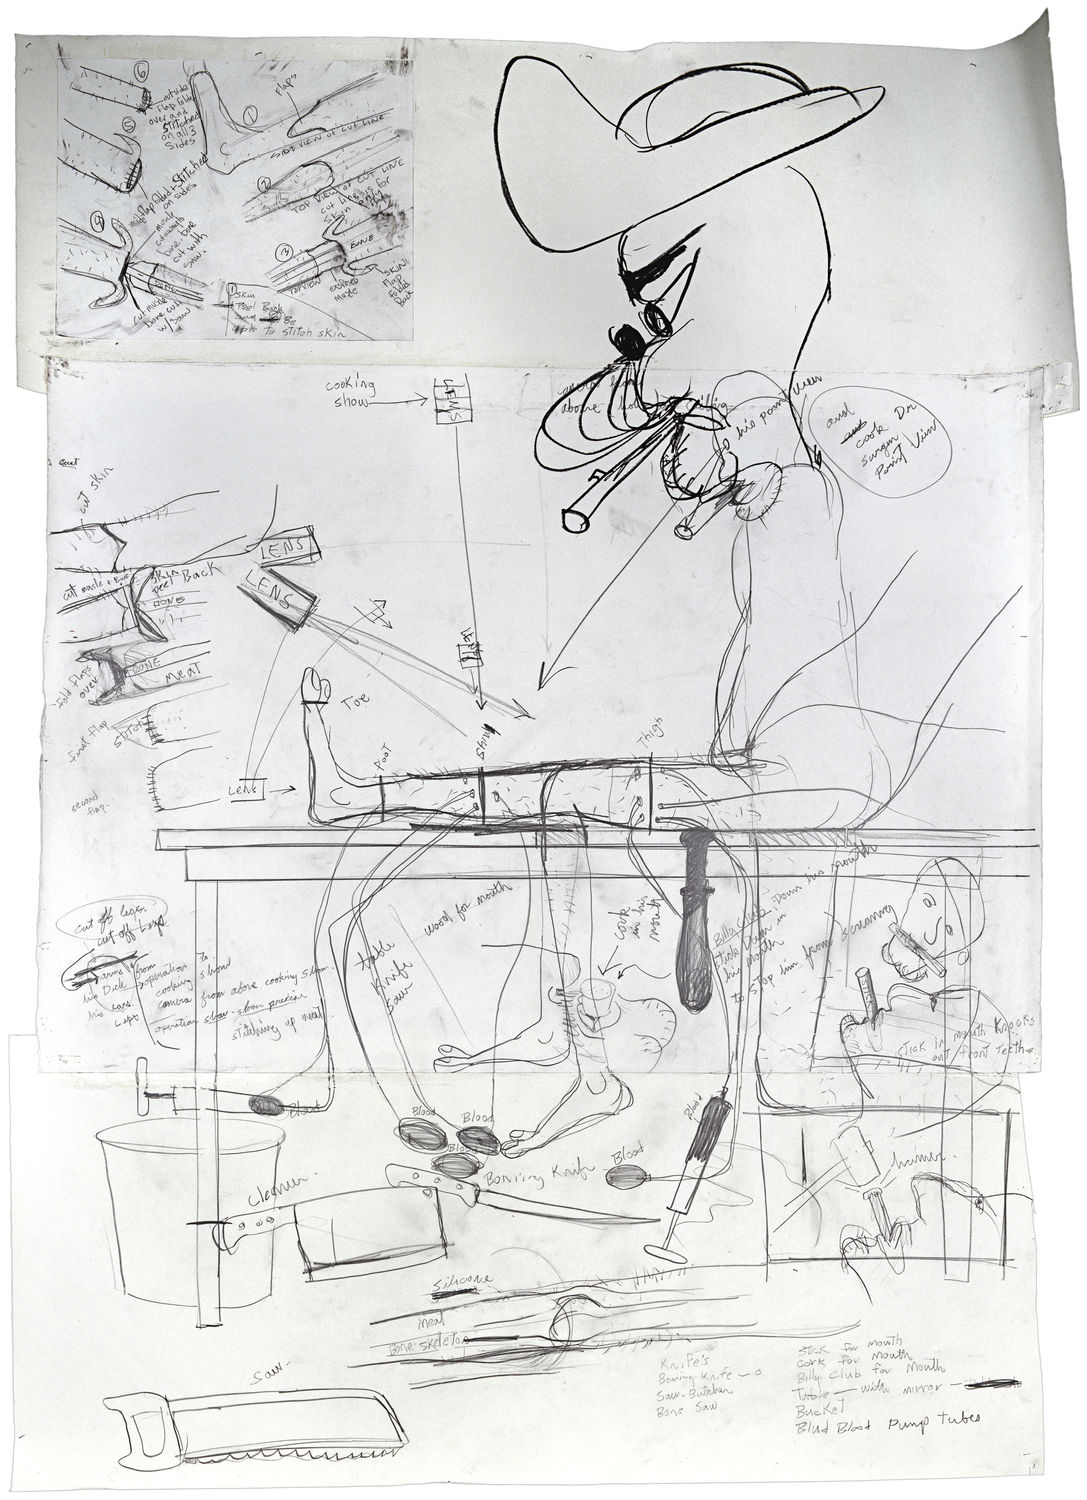 a drawing with black, hand-drawn images on several pieces of white paper, taped together. simple lines sketch out several drawings across the paper, with words written as well. An image of a man with a hat, seated, with his leg outstretched is the largest, central figure.